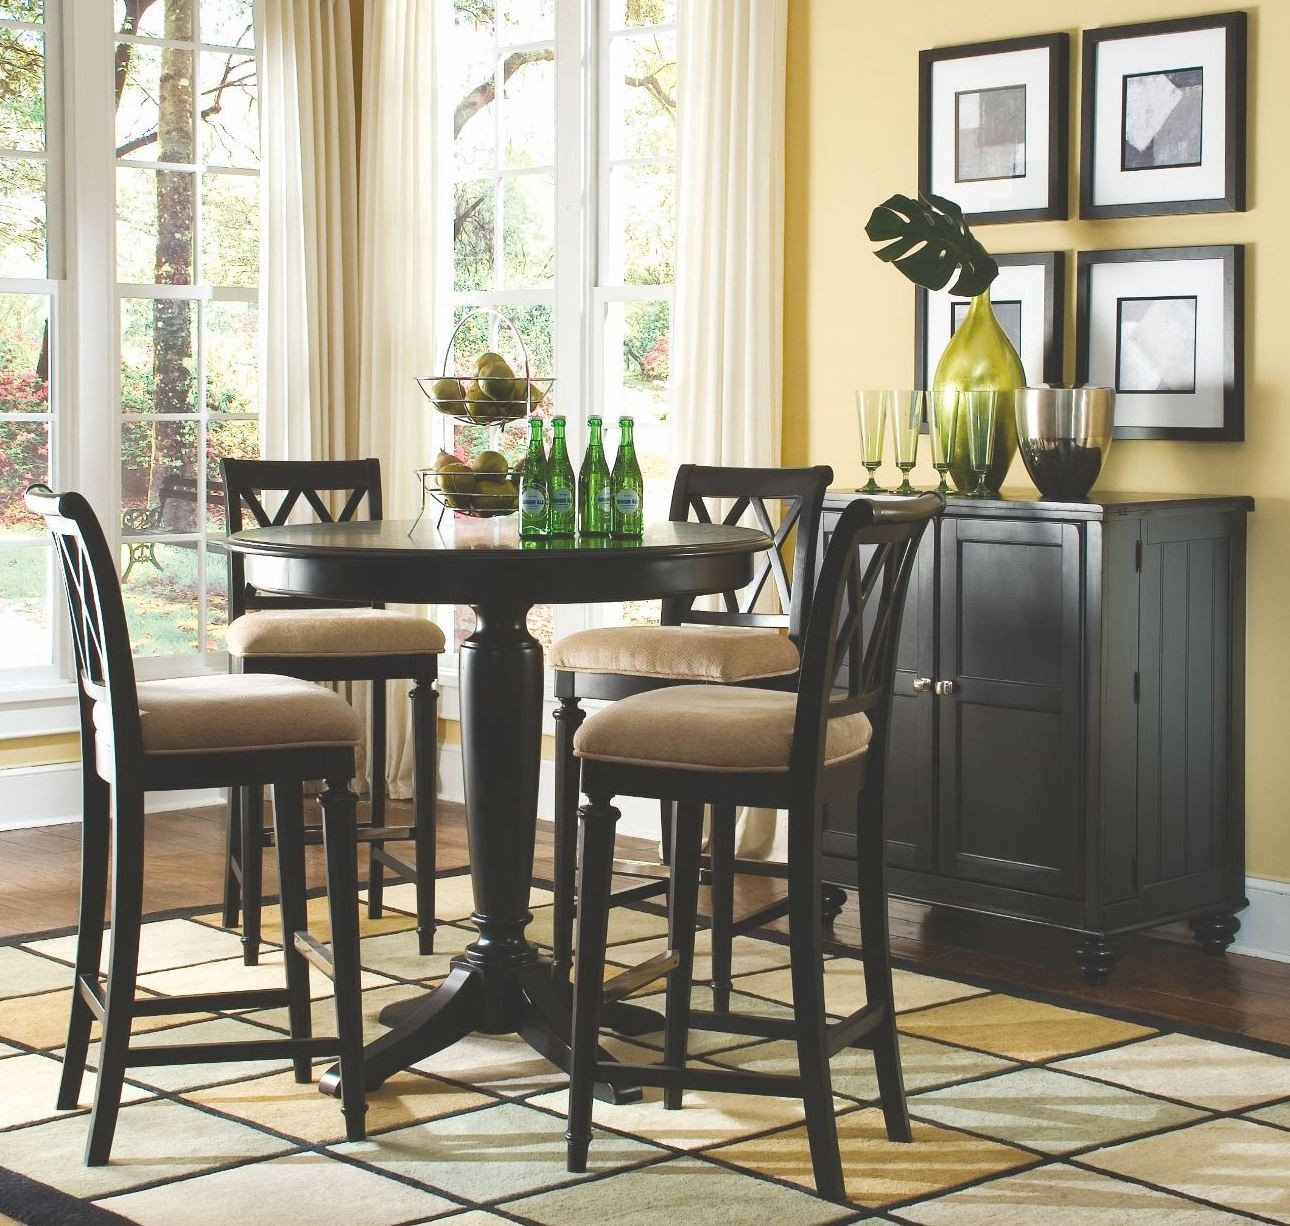 camden black round counter height pedestal dining room set from